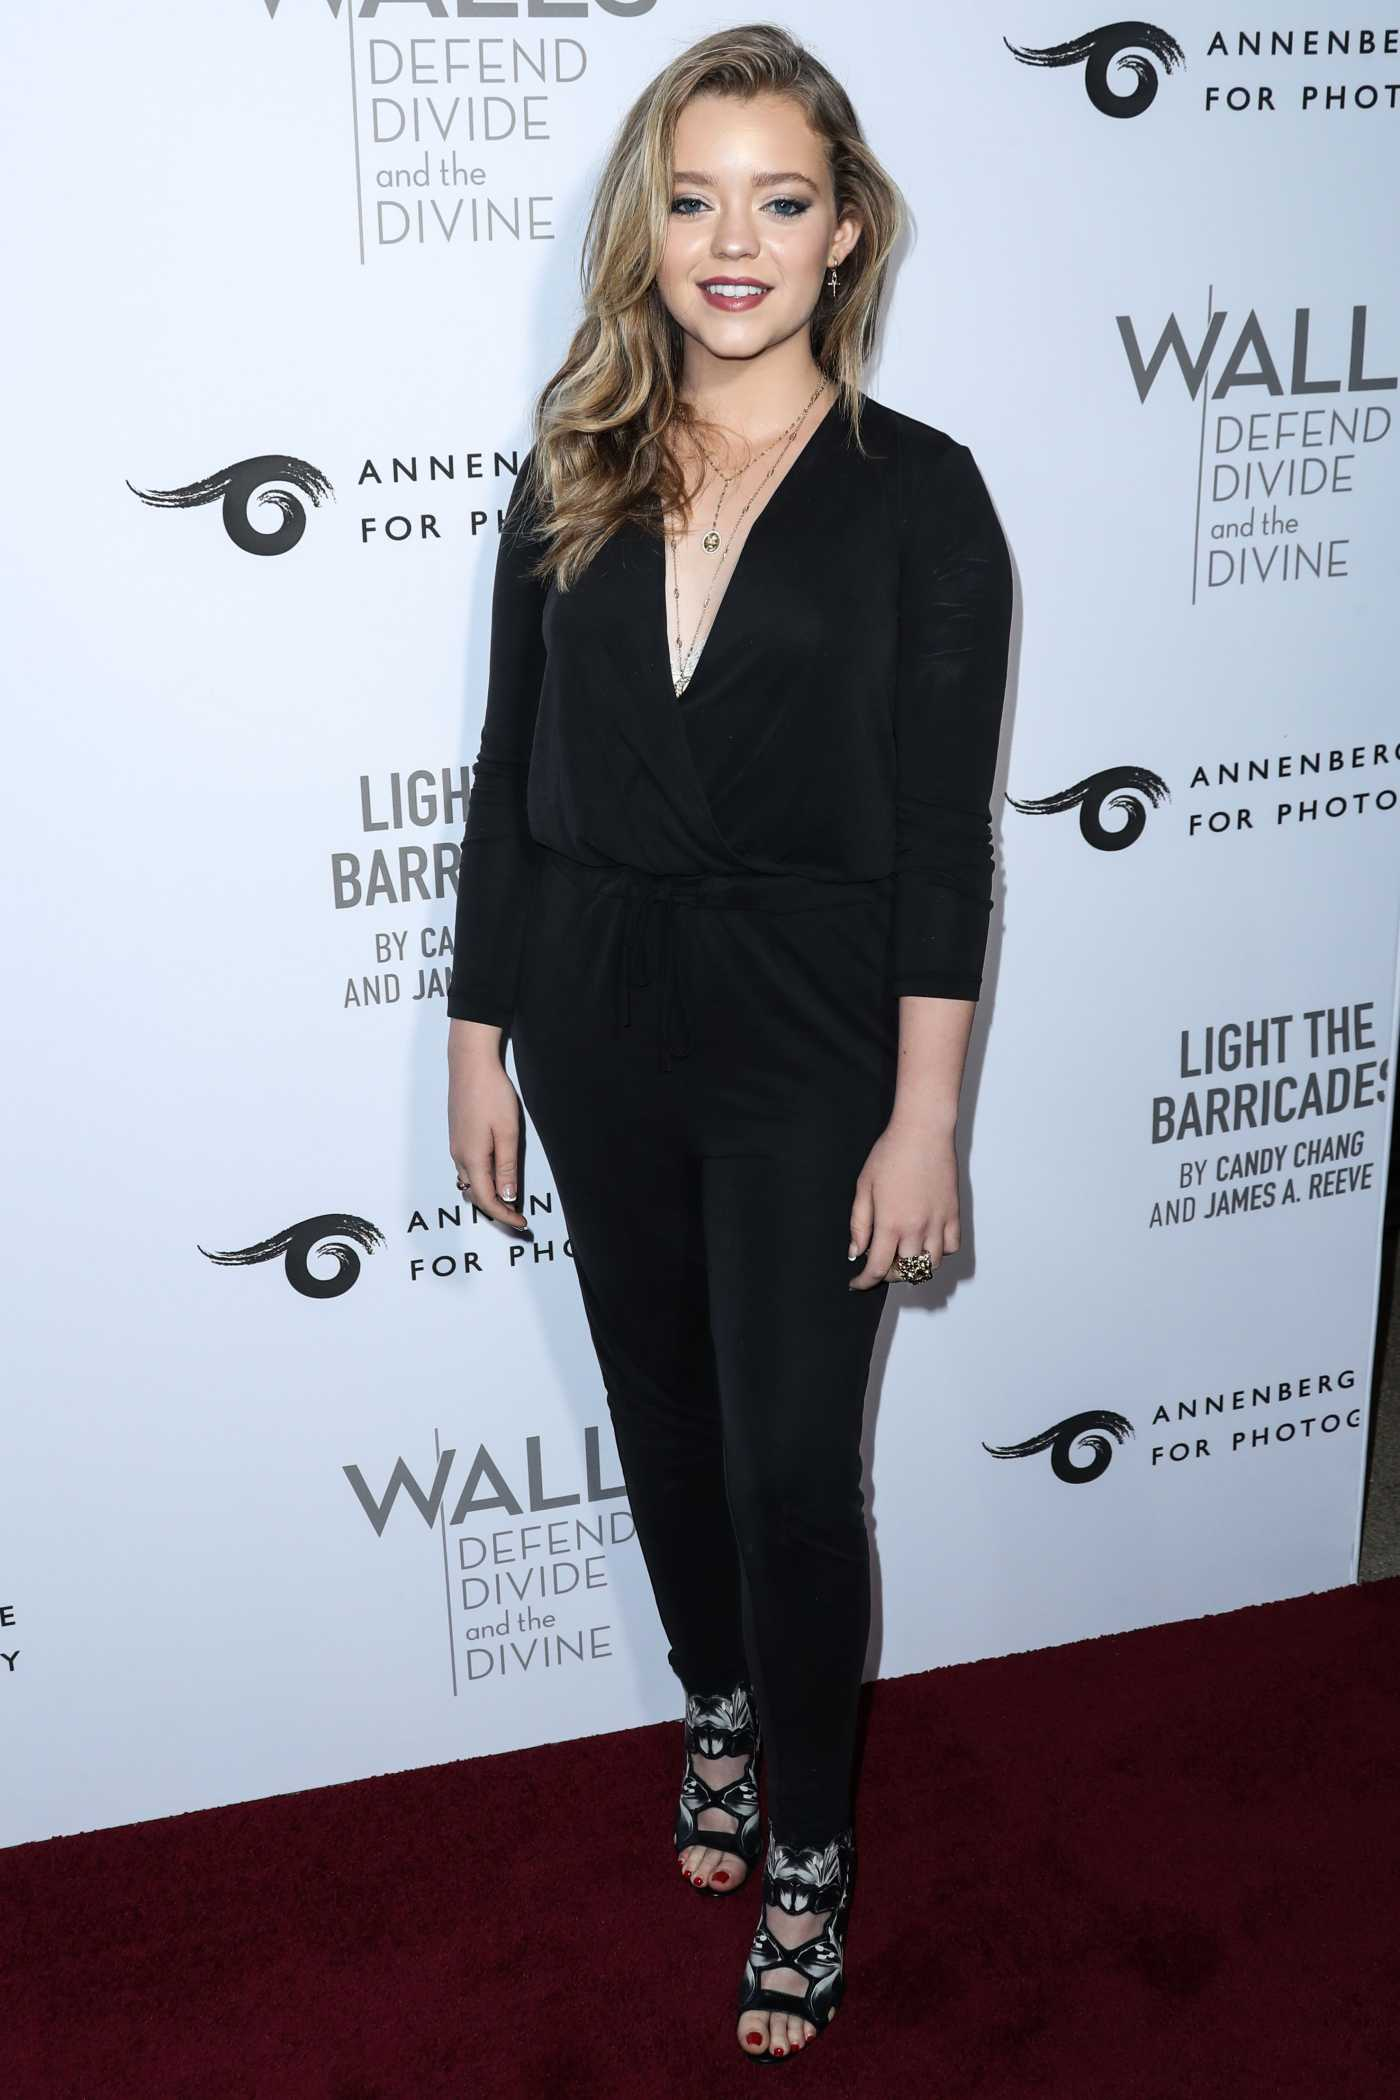 Jade Pettyjohn Attends the Annenberg Space for Photography Exhibit Opening in Century City 10/03/2019